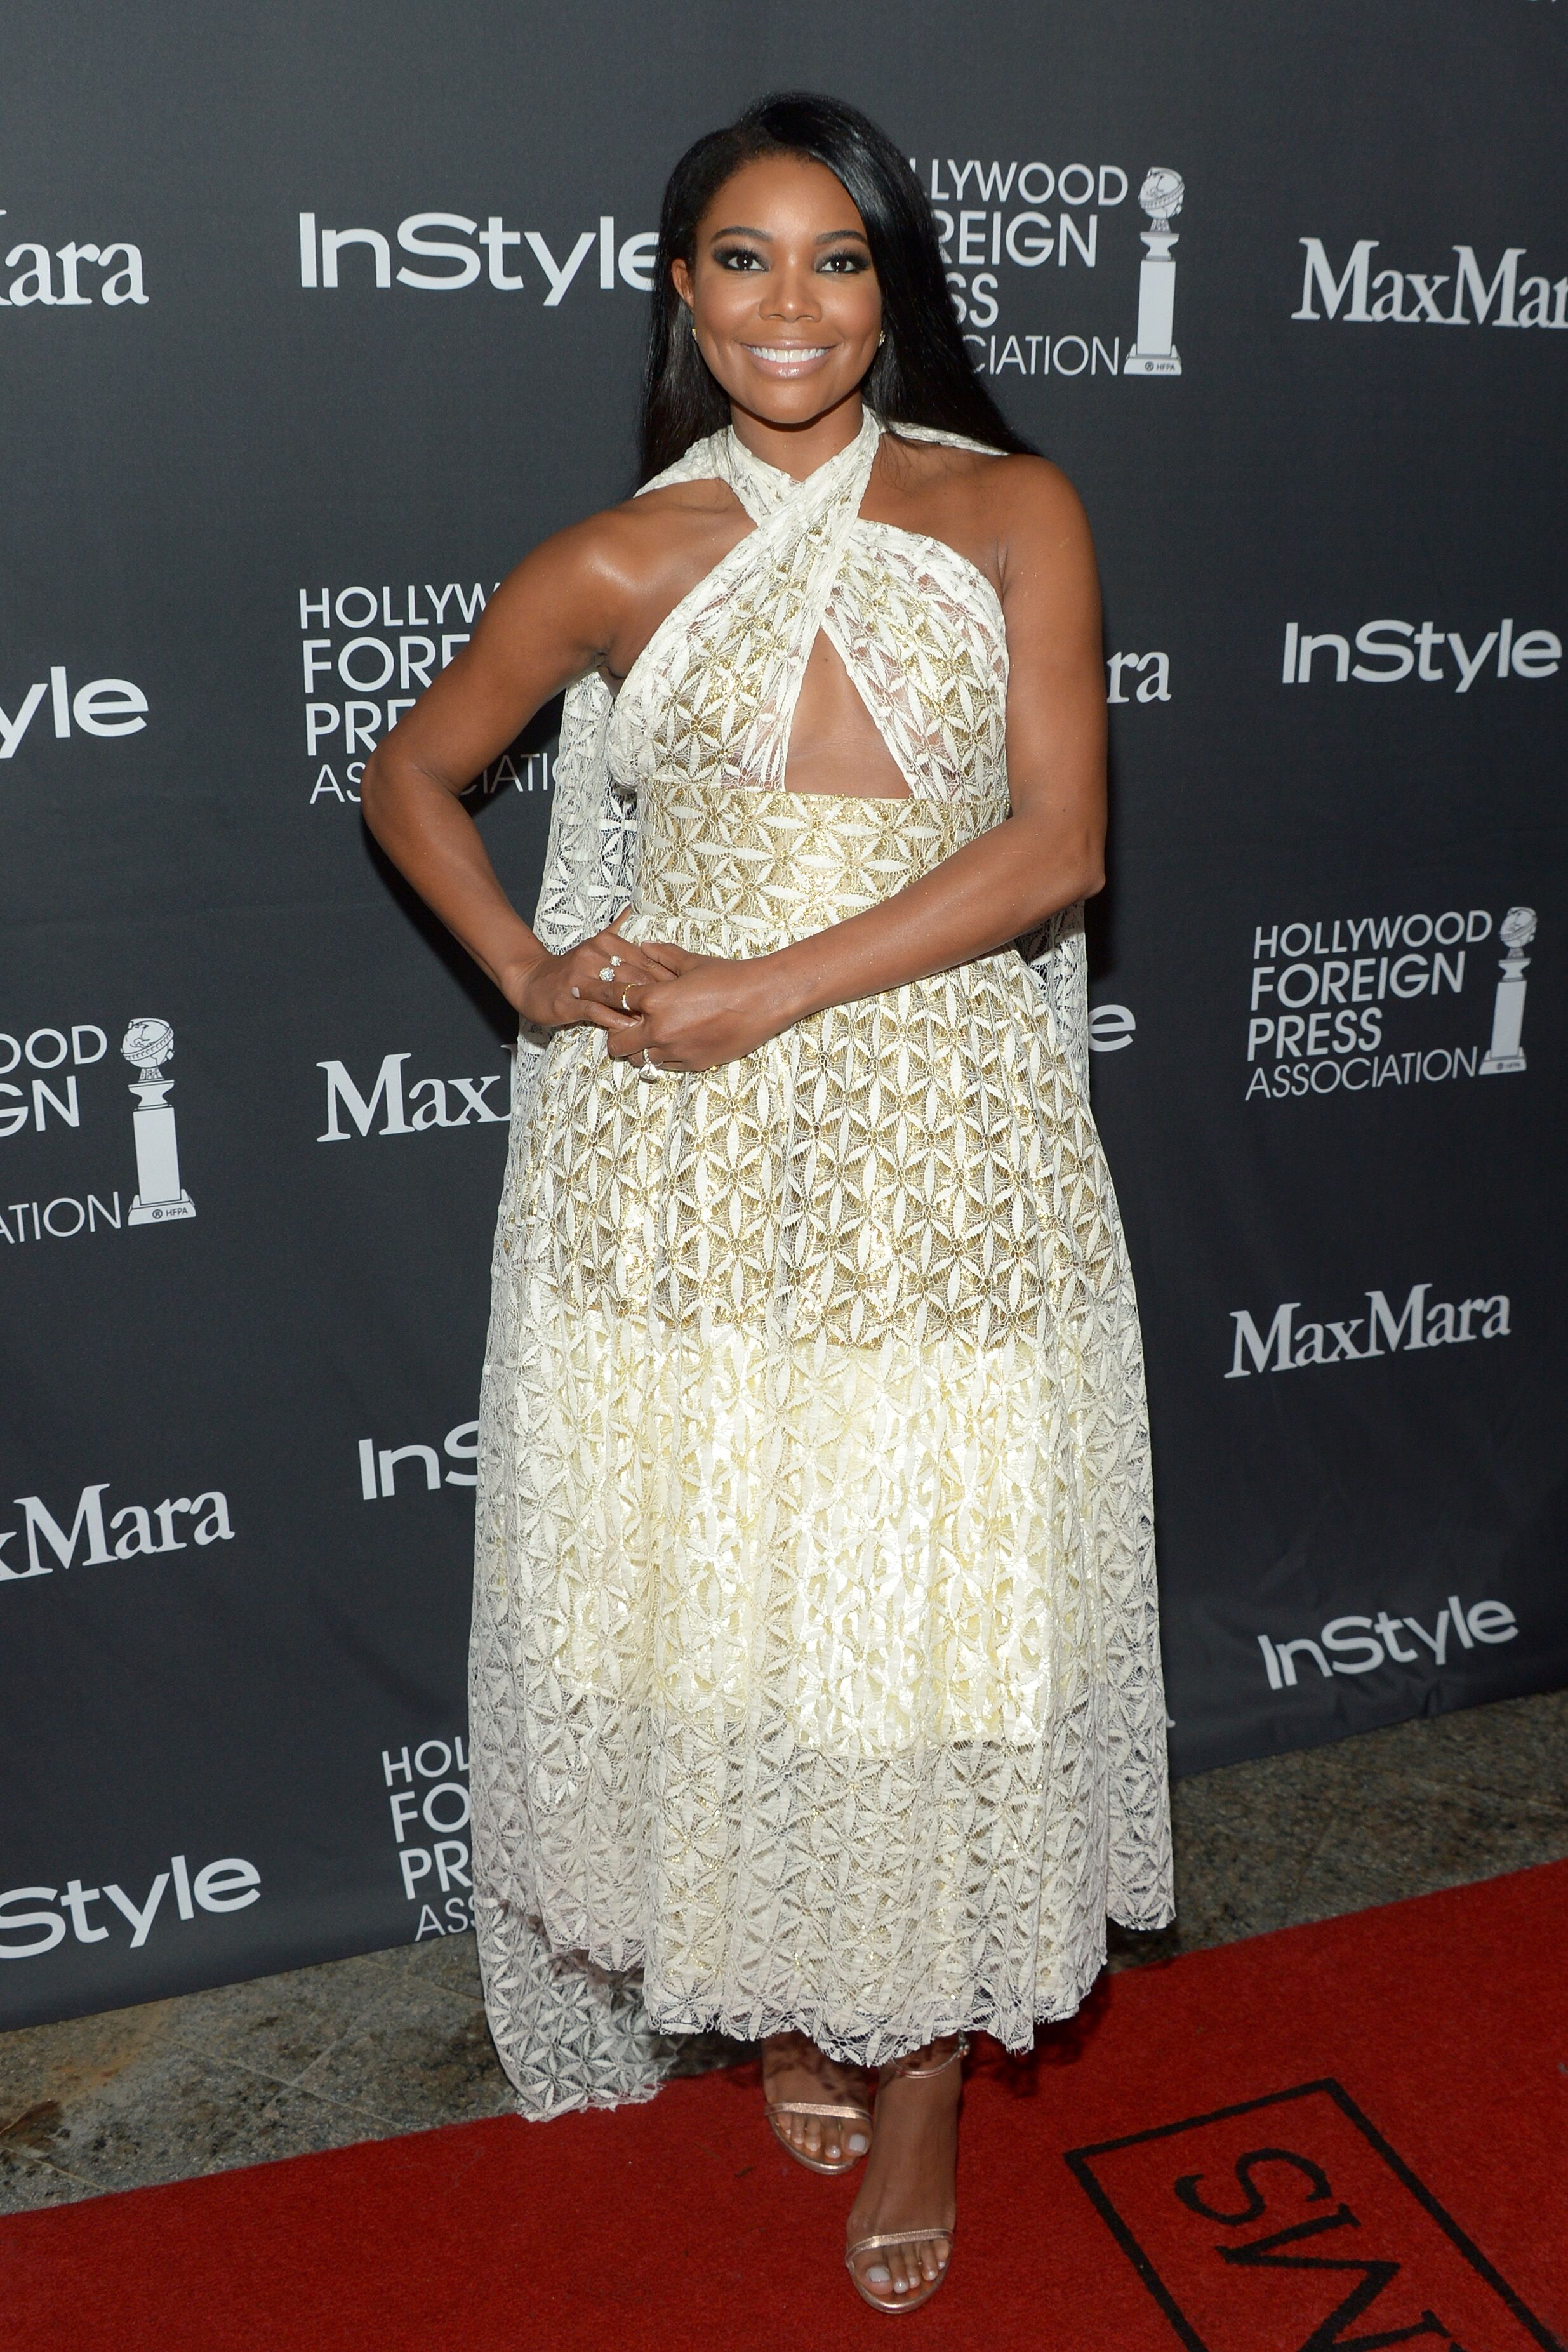 Gabrielle Union attends the TIFF/InStyle/HFPA Party during the 2016 Toronto International Film Festival on September 10, 2016 in Toronto, Canada | Photo: Getty Images